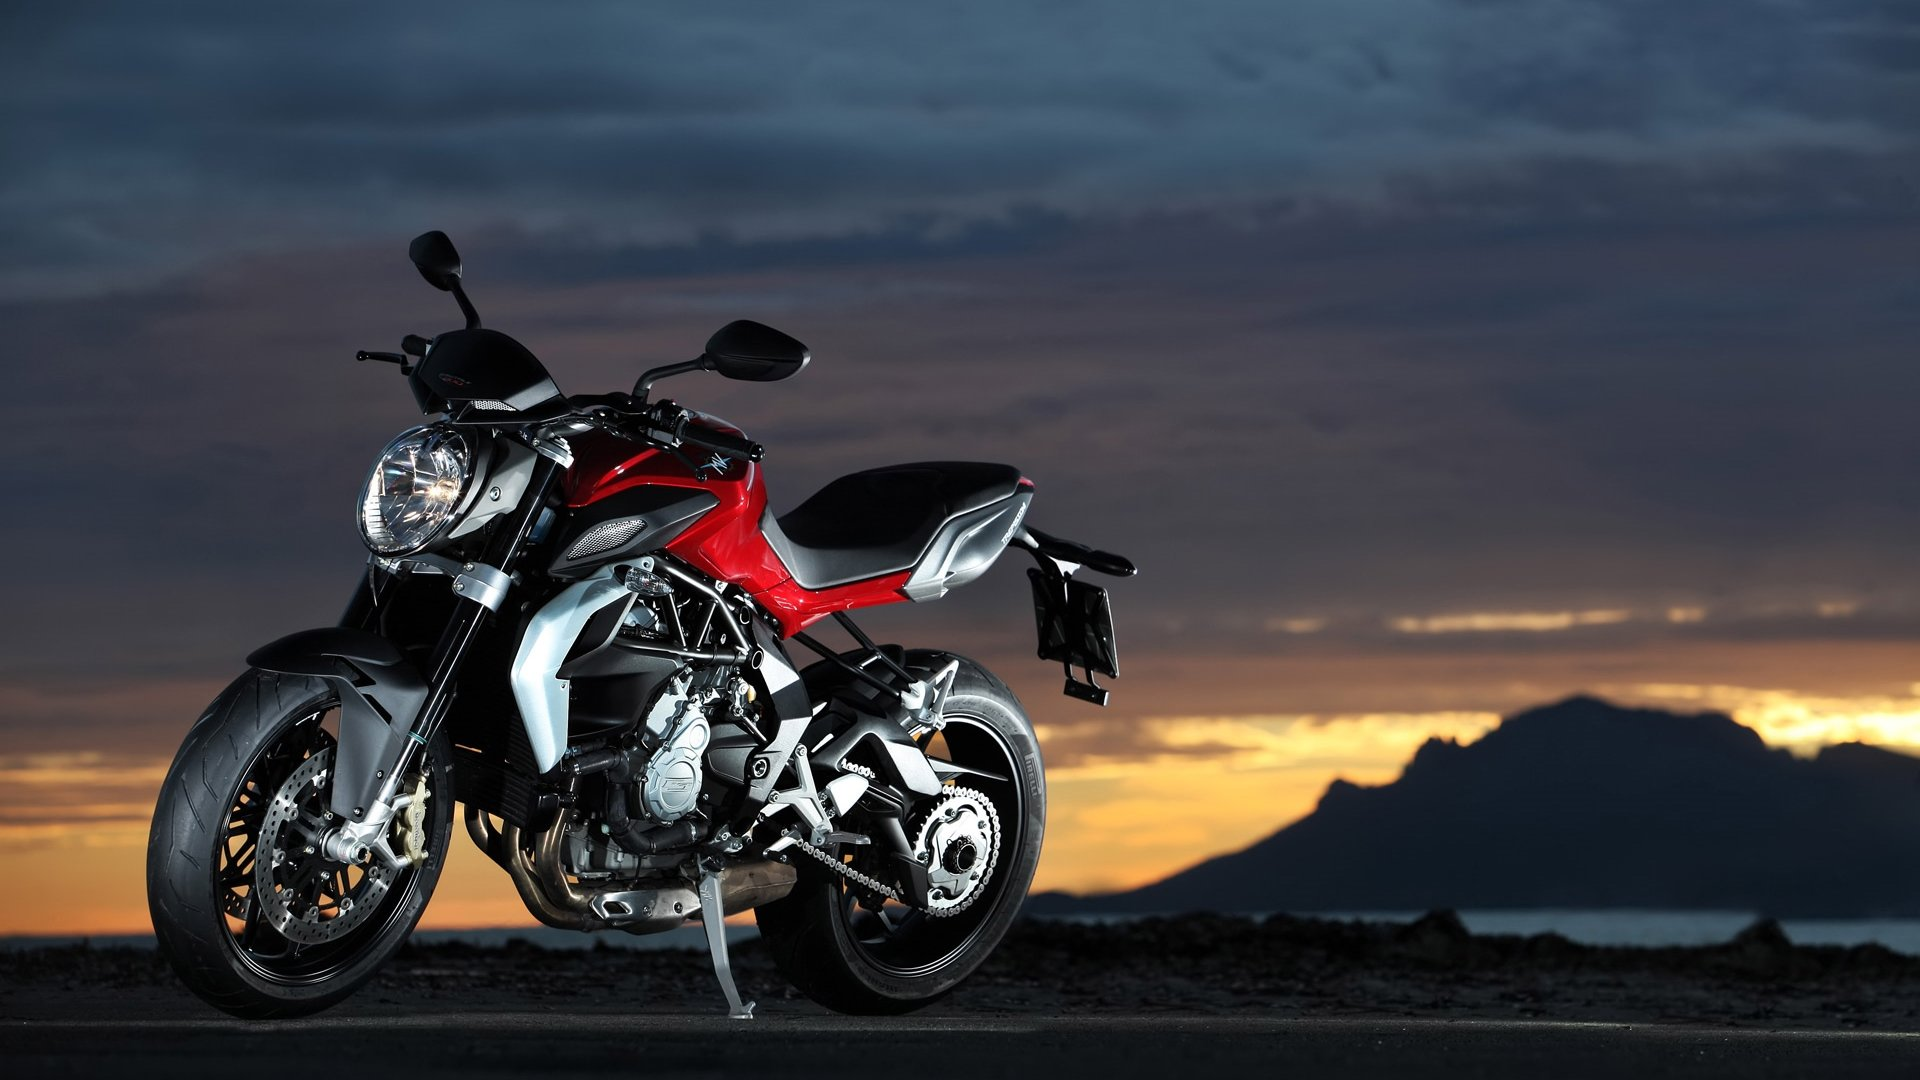 mv agusta brutale wallpapers 1920x1080 full hd (1080p) desktop